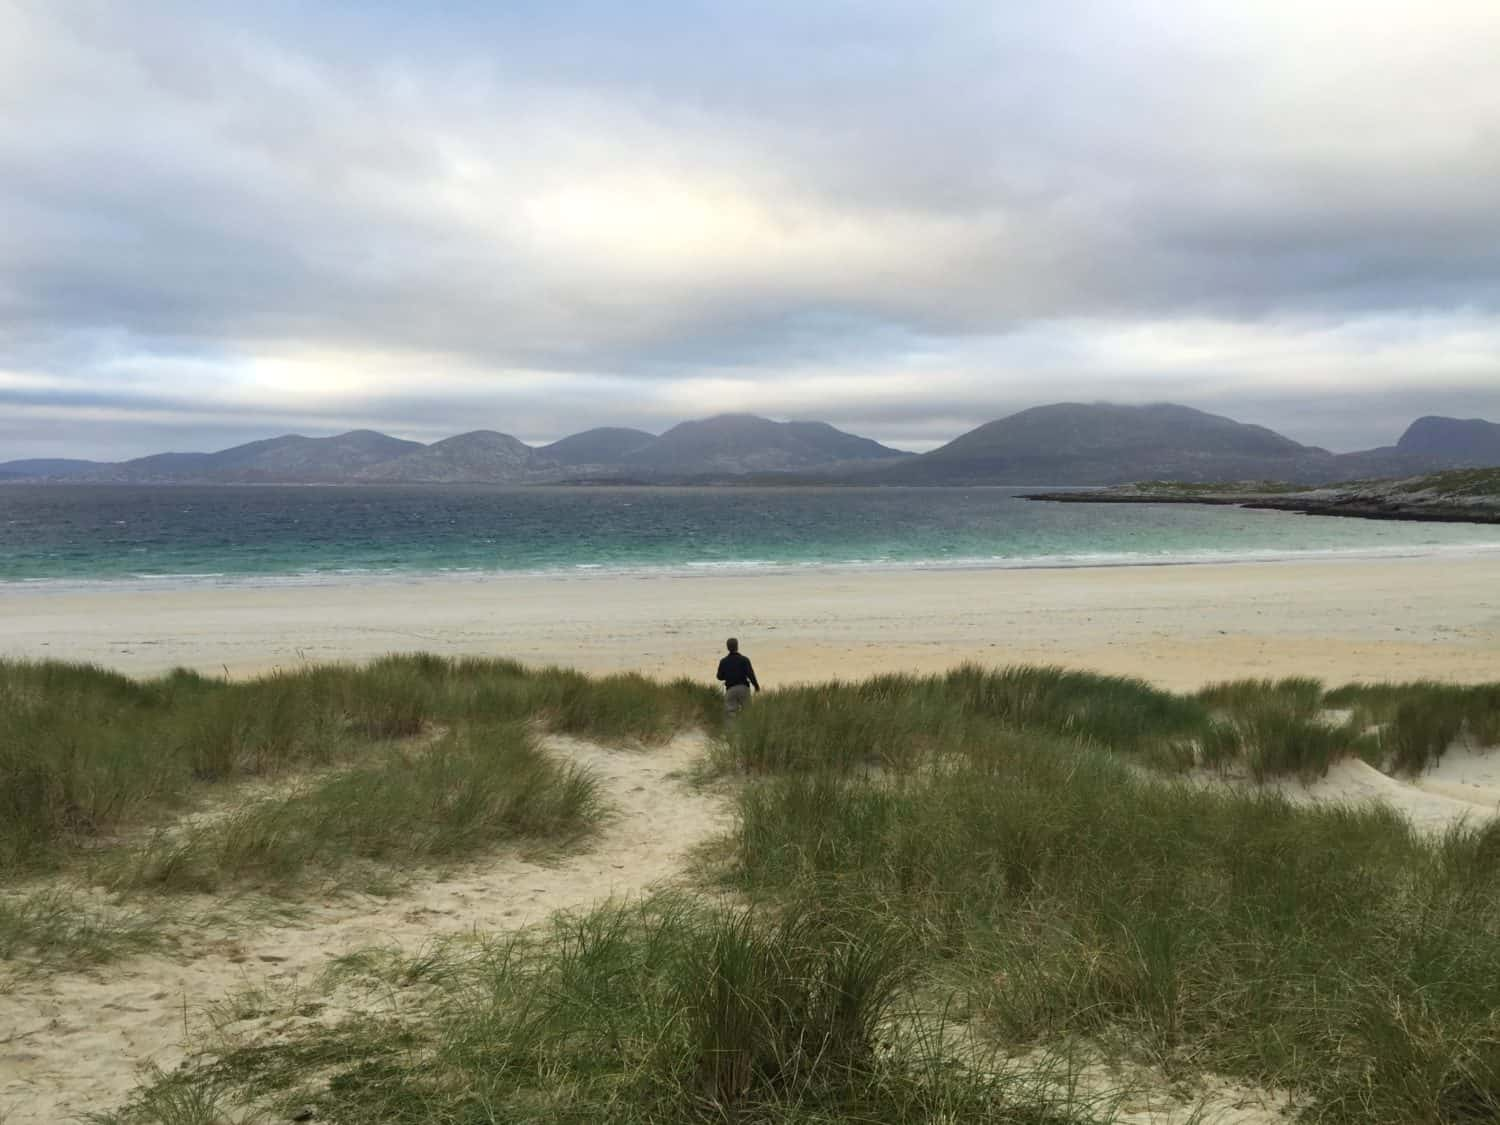 Places to visit in Scotland - the turquoise beaches of the Isle of Harris & Lewis